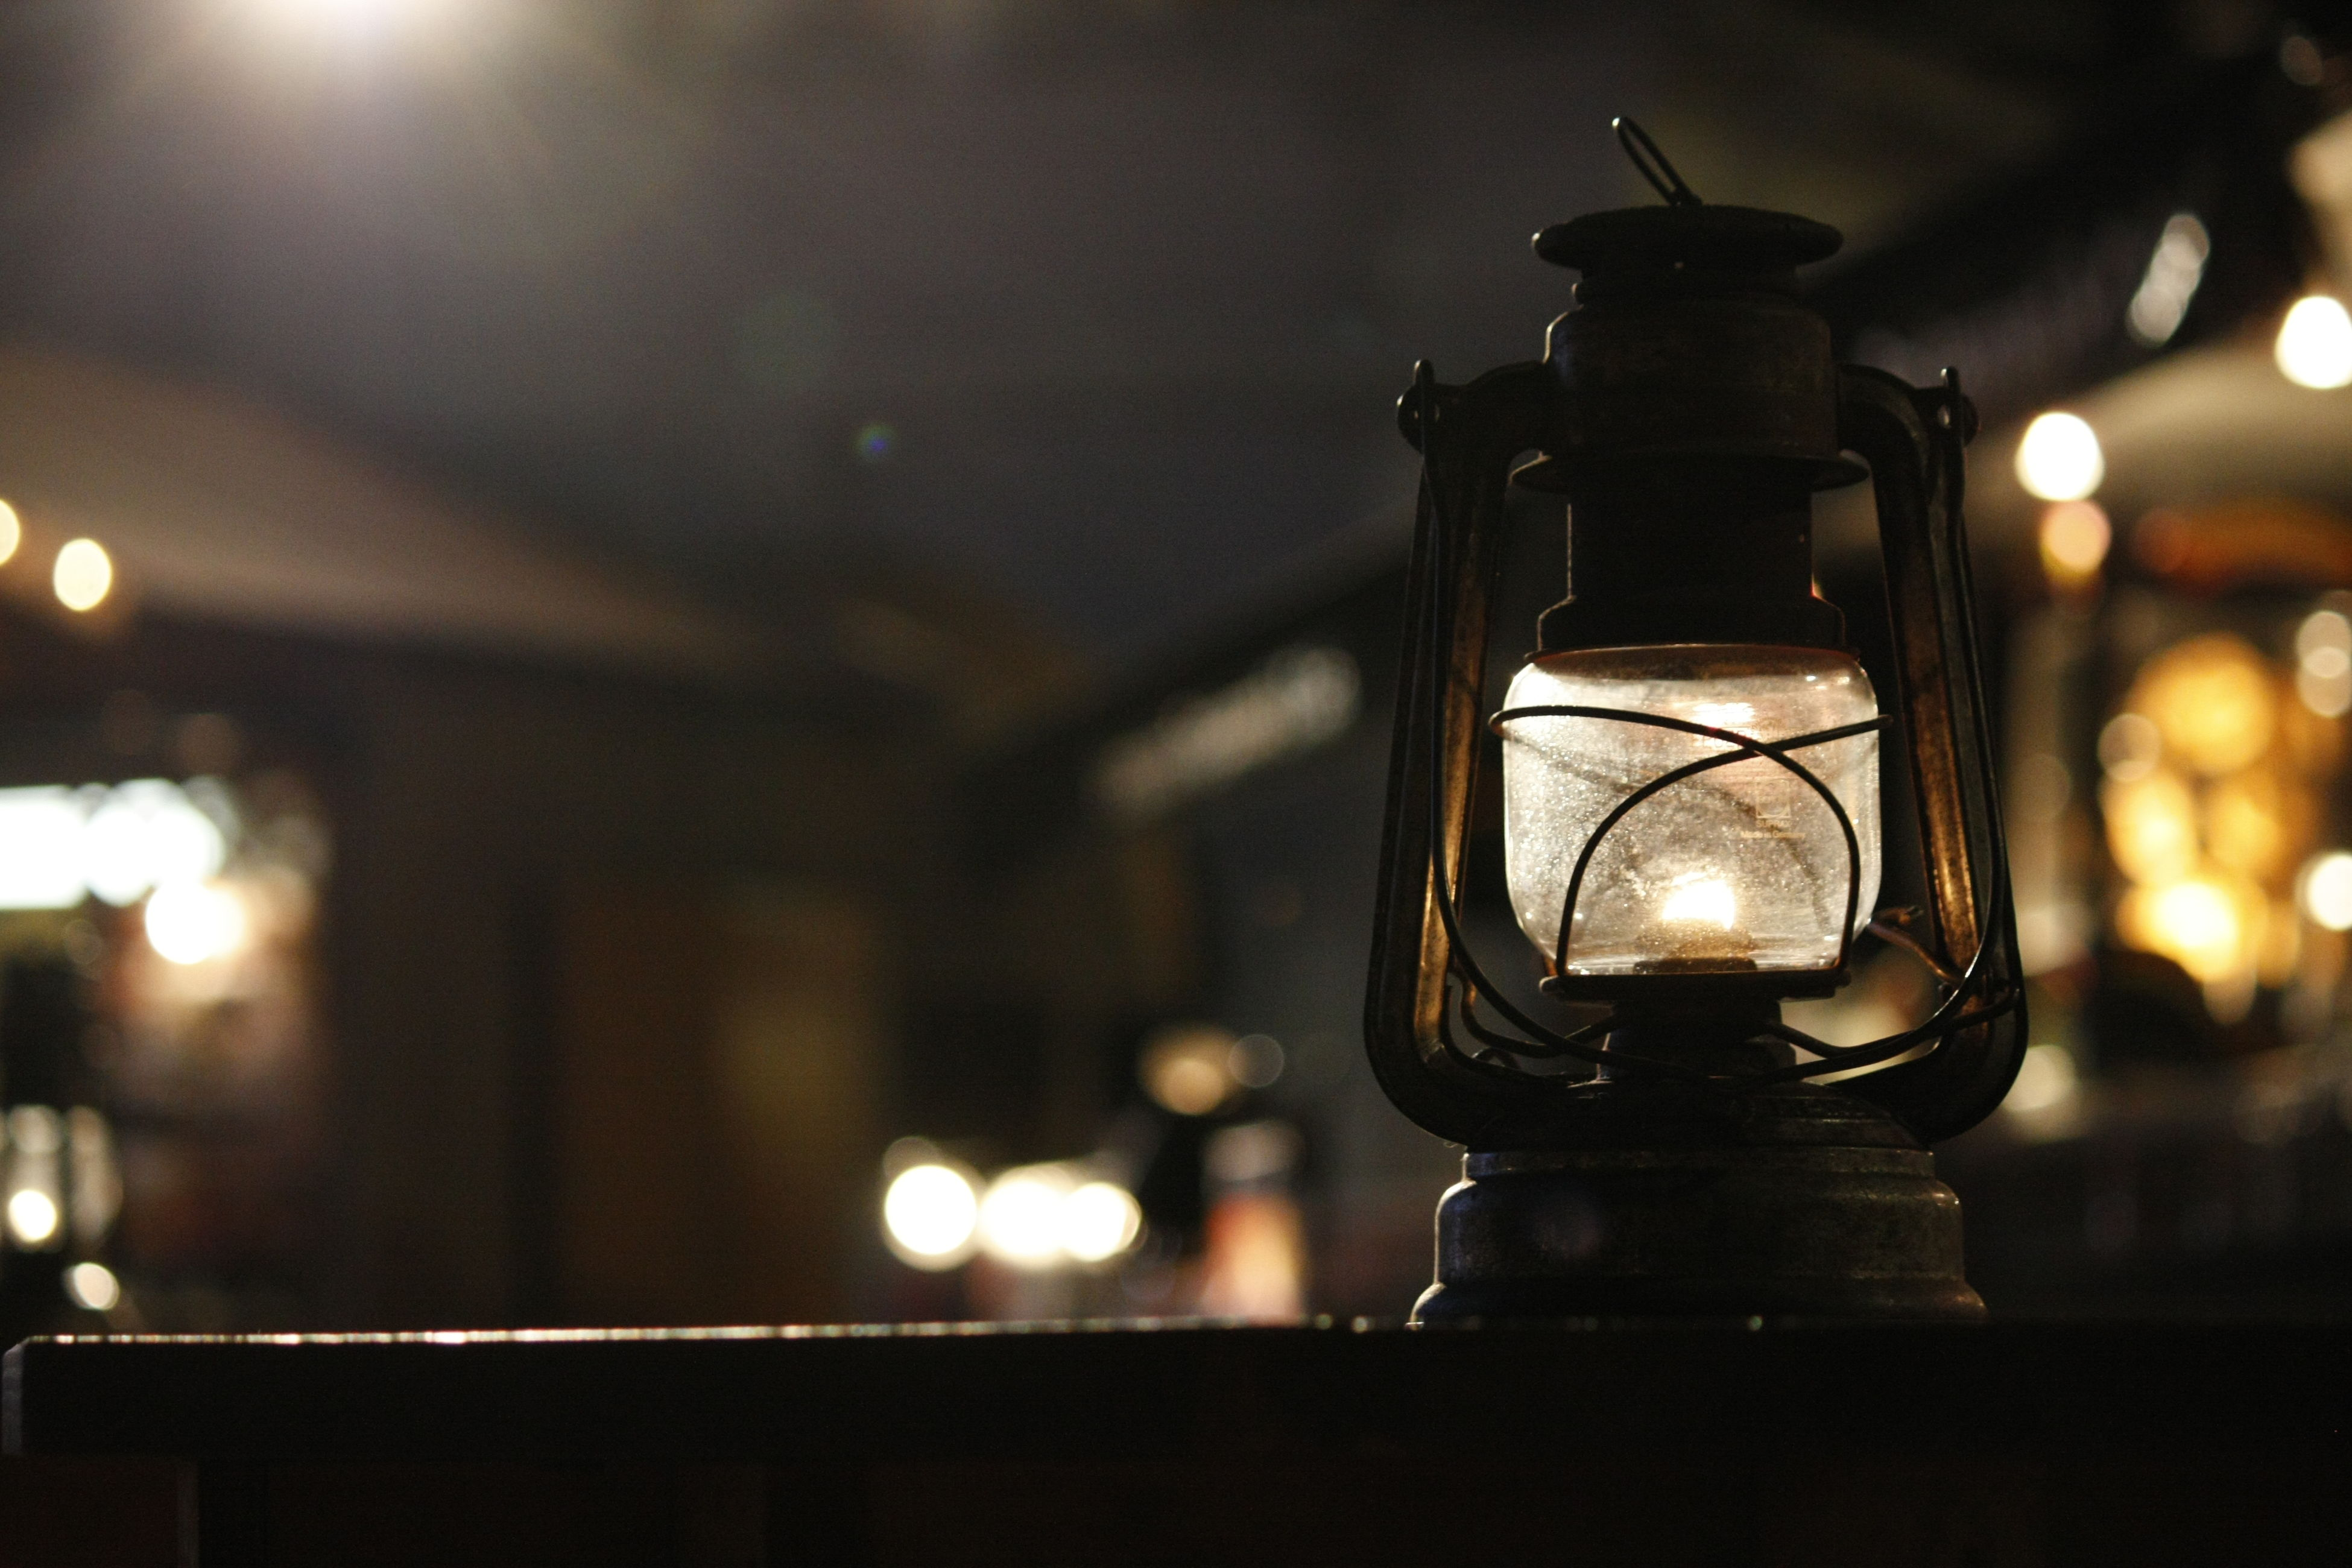 lighting equipment, illuminated, indoors, no people, low angle view, close-up, day